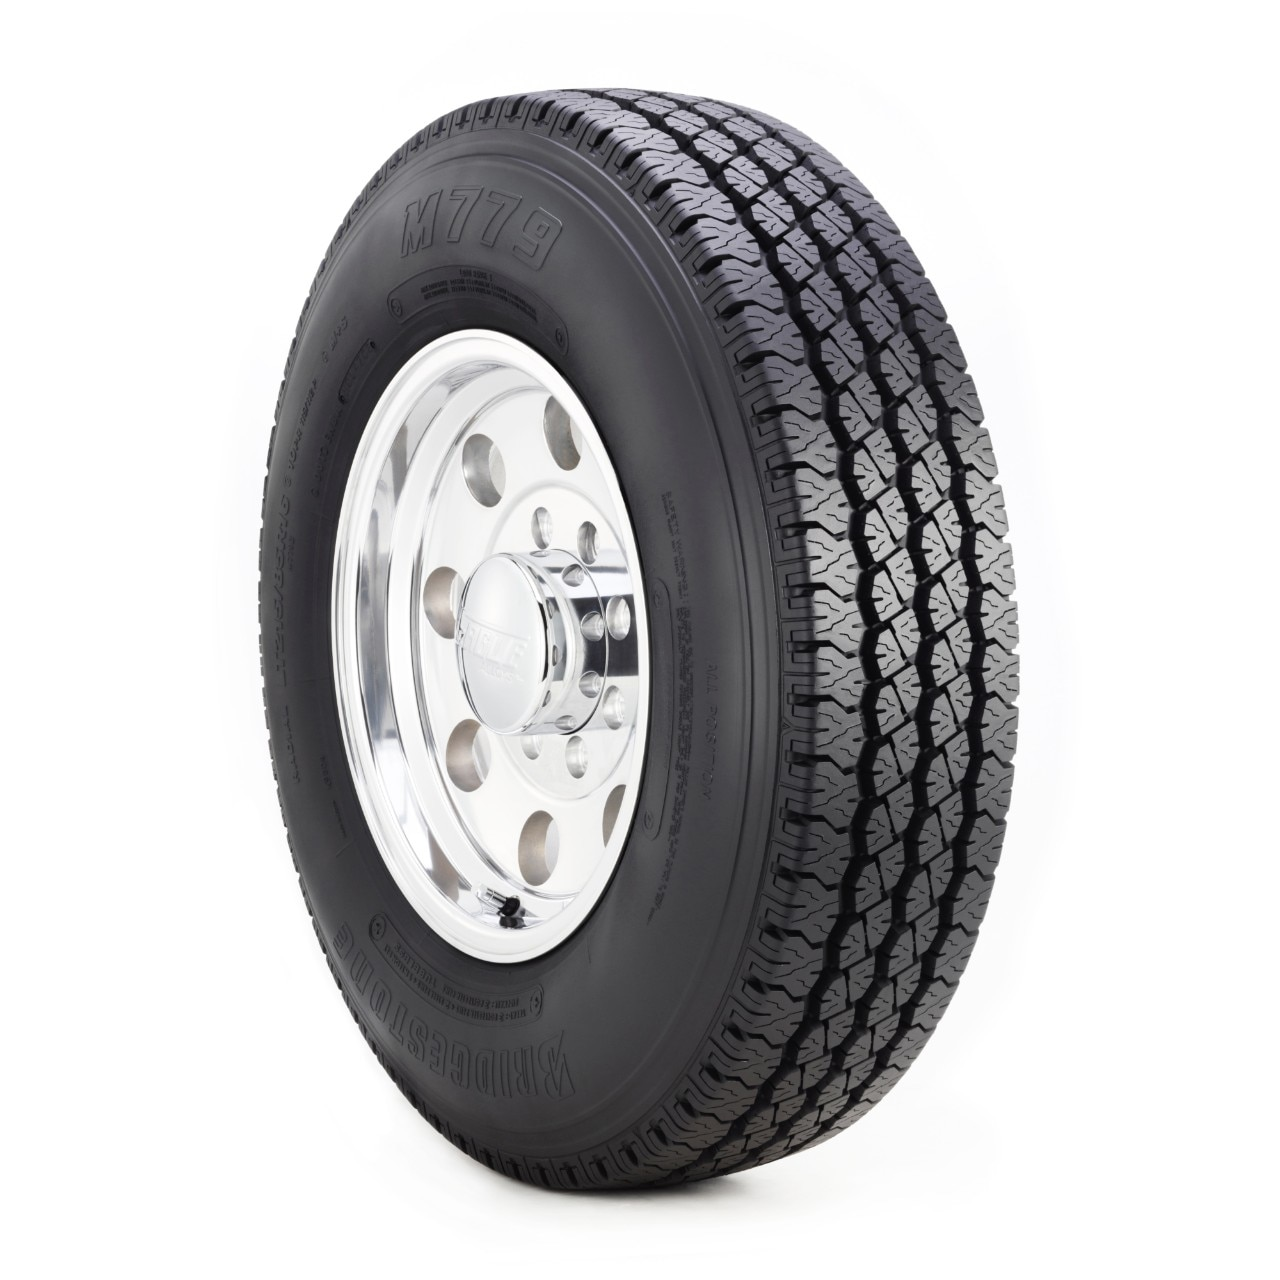 Bridgestone Other M779